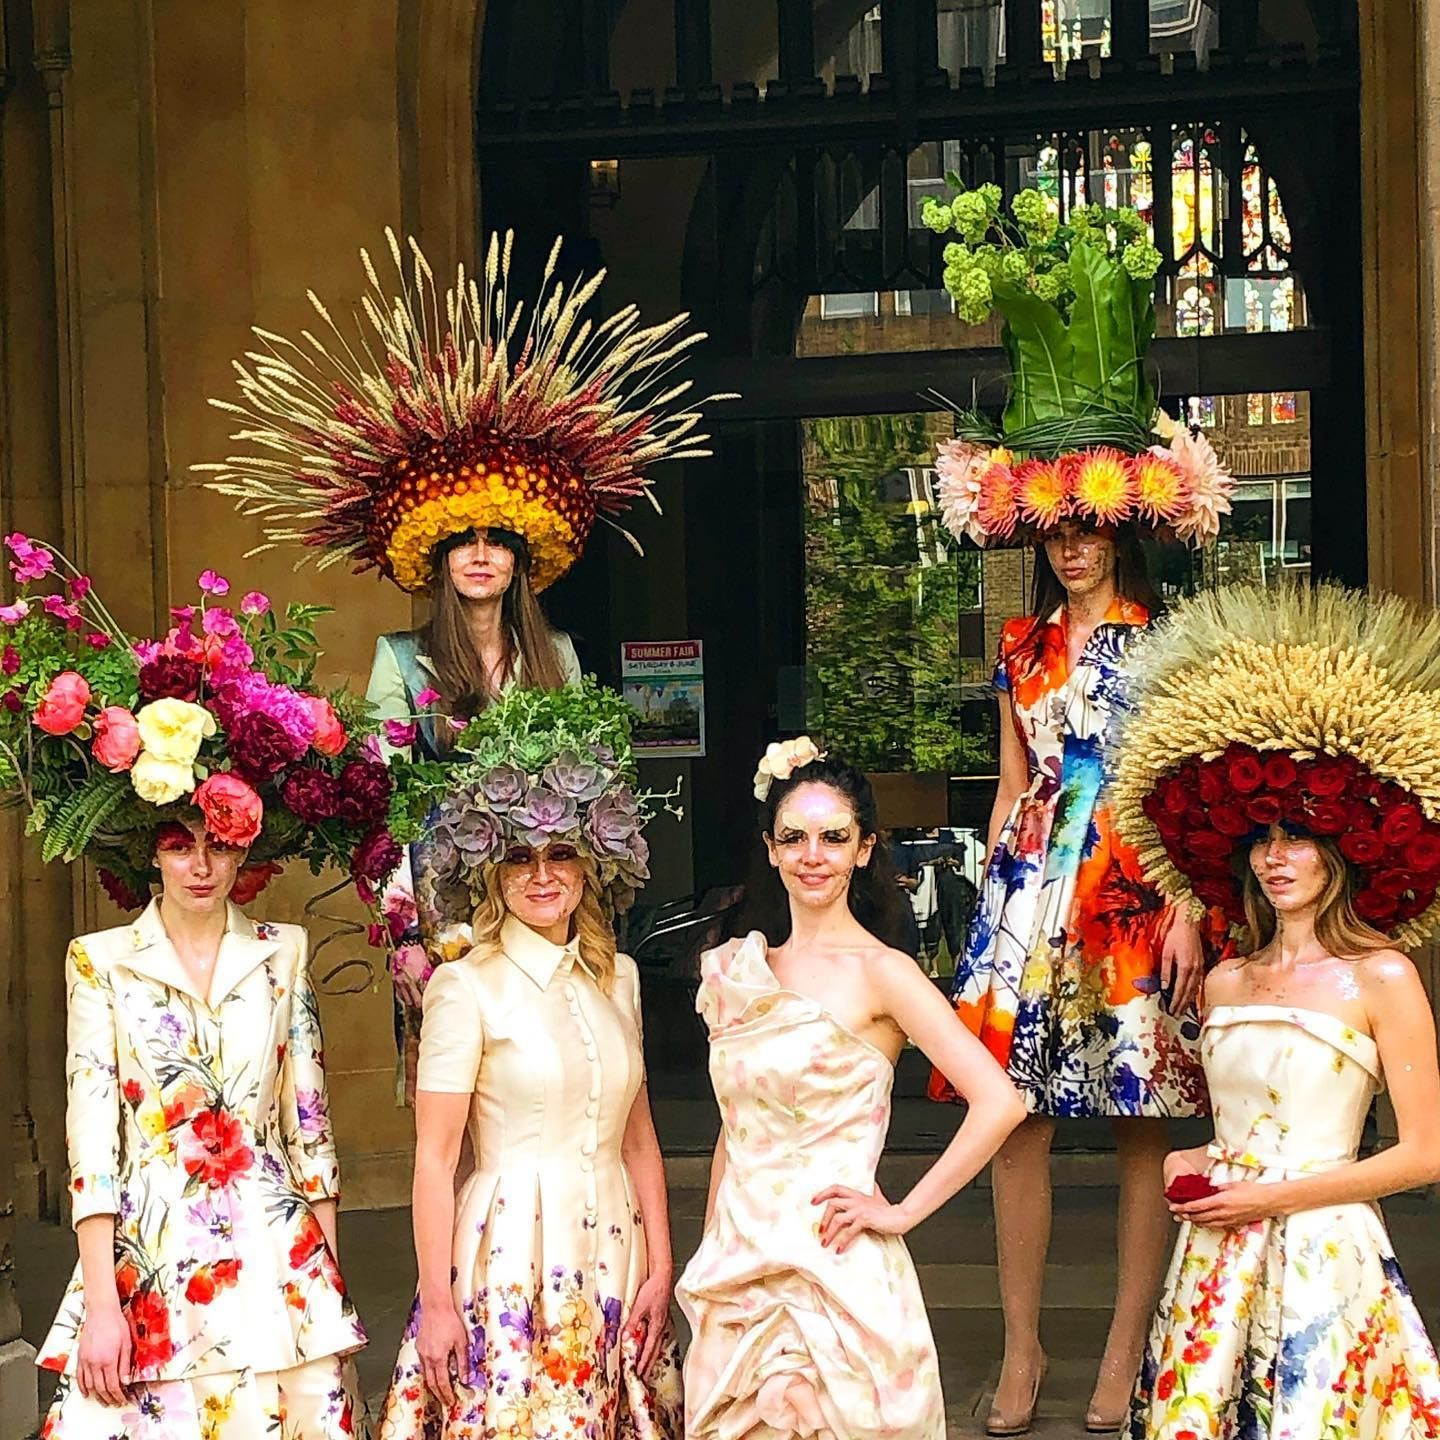 Today a year ago - standing outside #stlukessydneystreet taking pictures of my hats for #catherinewalker with models and photographers and press in the middle of #chelseaflowershow2019 - seems like a lifetime ago - or for a nice juicy event-or just a party with friends!! #sundaybest #flowerhats #flowerinspo #flowerdiary #flowergirl #designergear #gorgeousday #memorylane